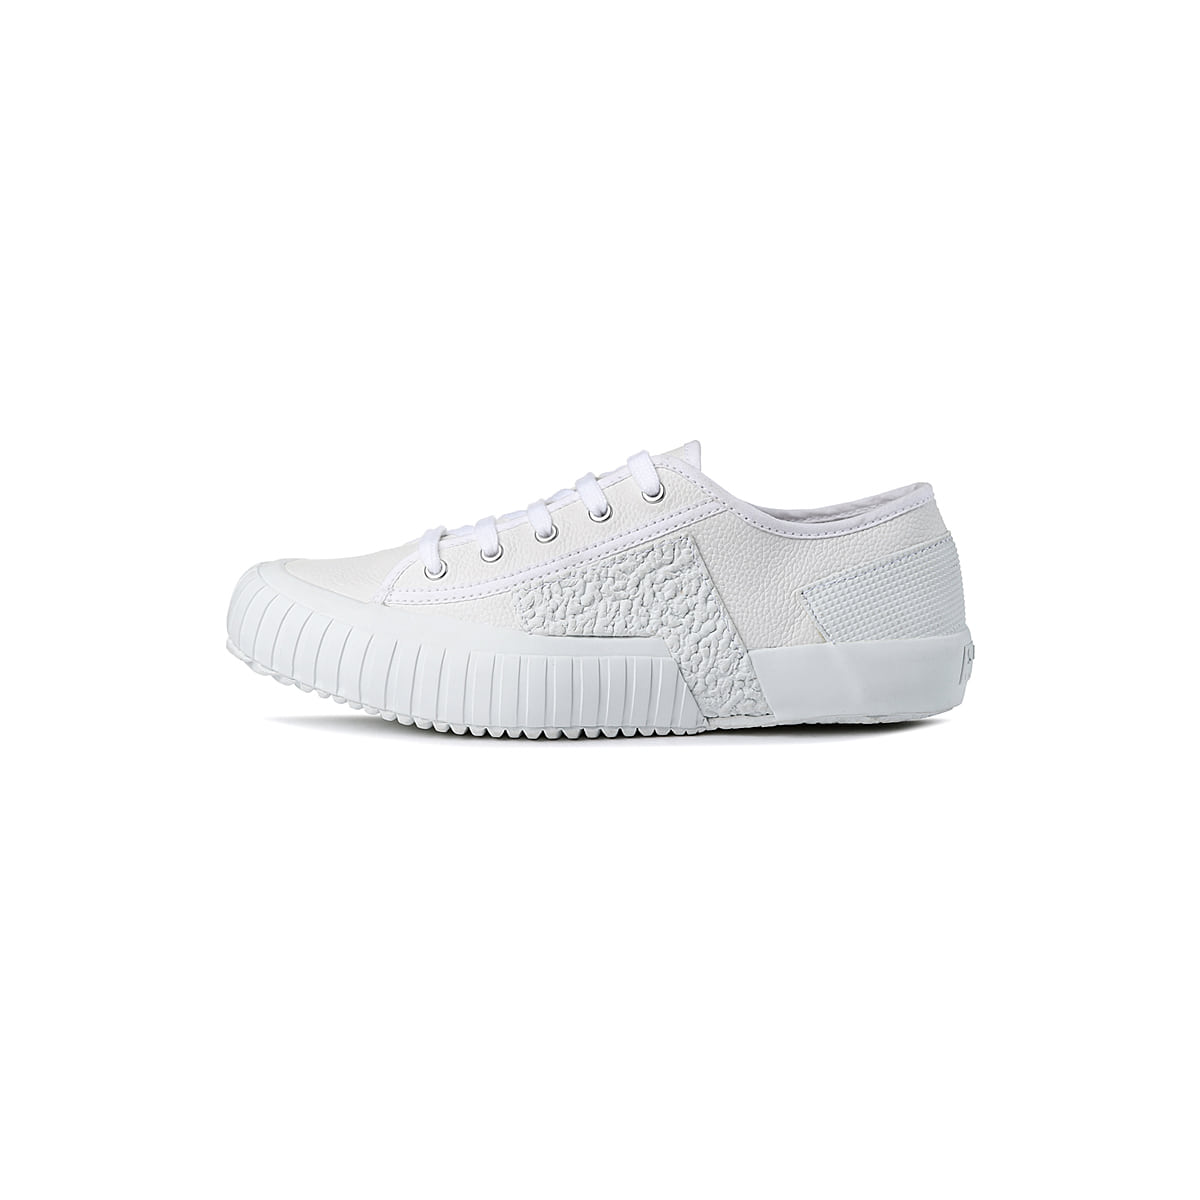 [SEOK] DECON LOW PEPPLE 'WHITE'